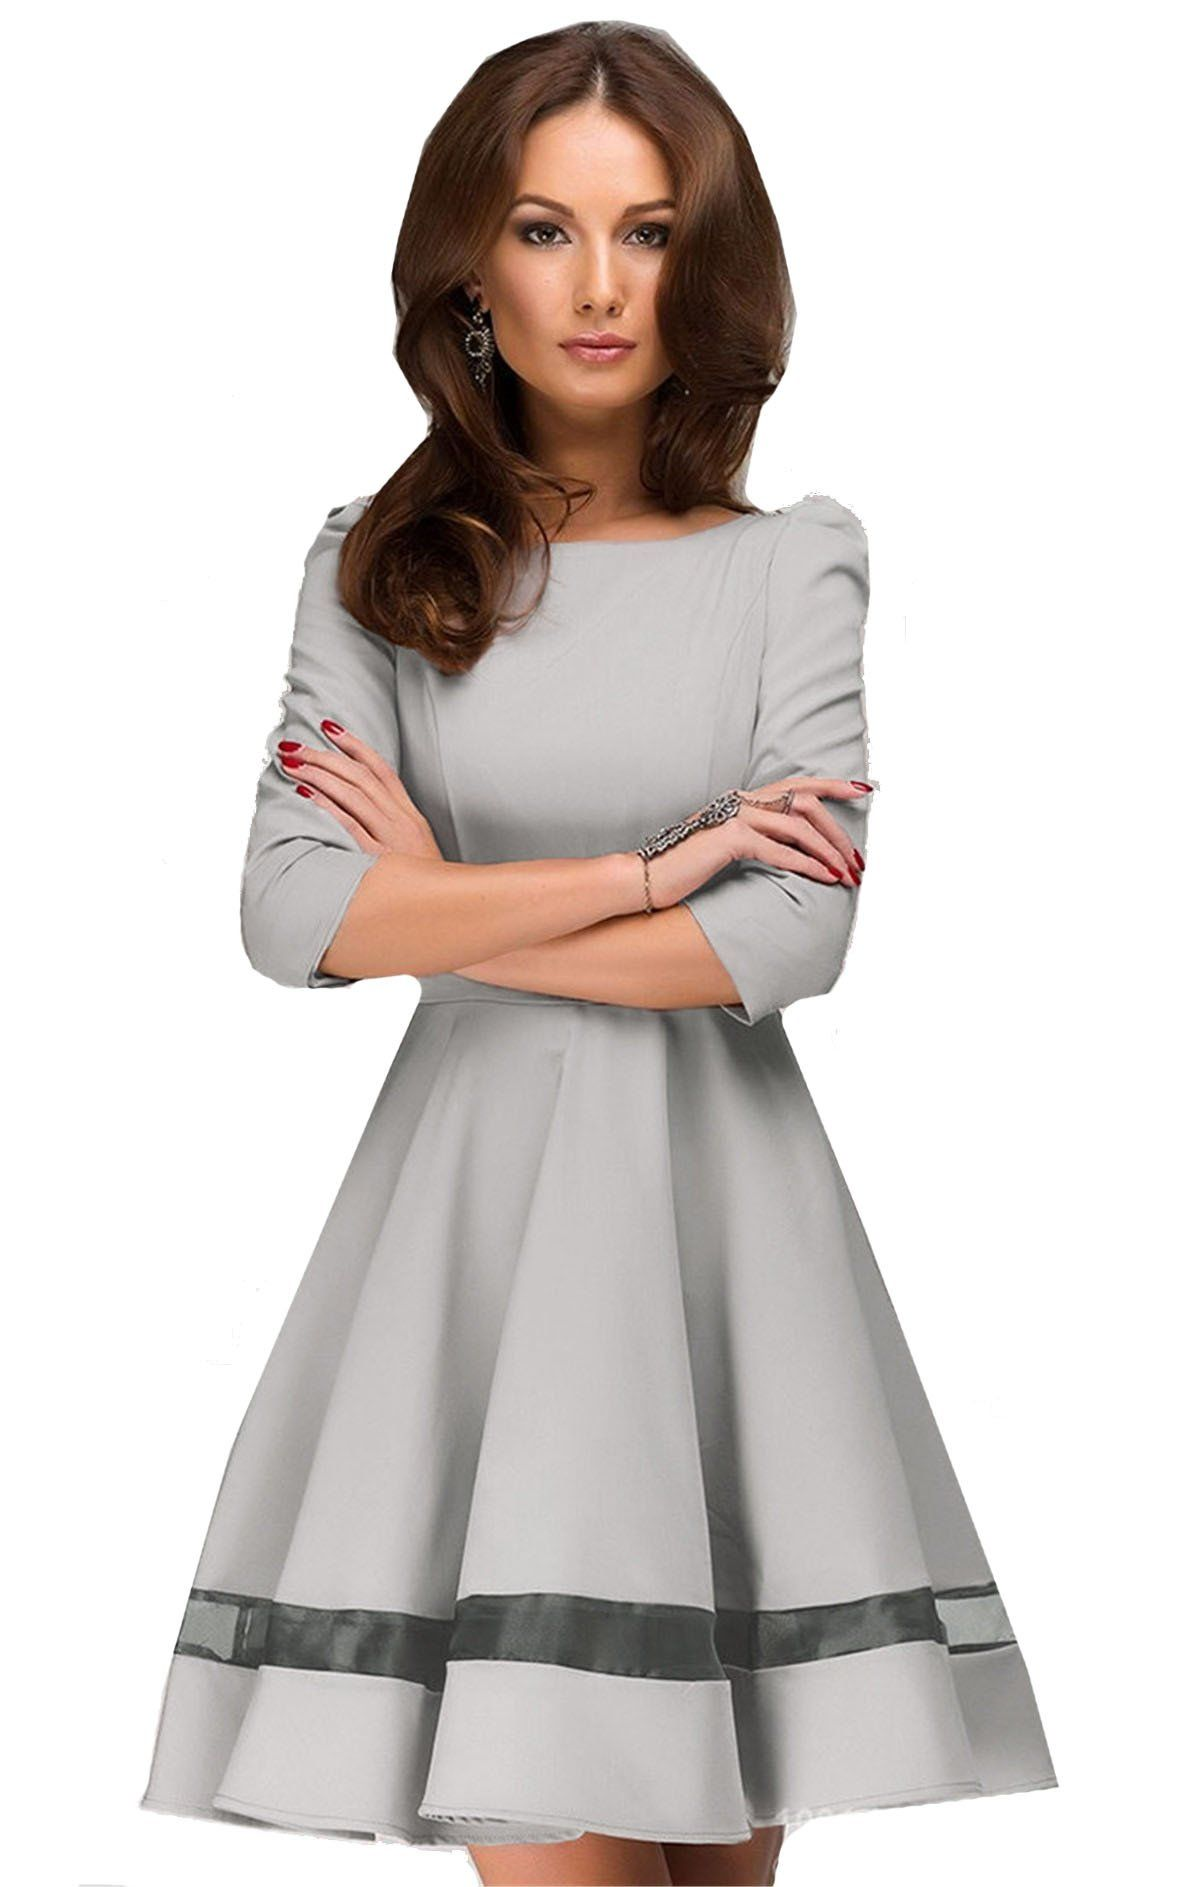 Shein Women S Grey Casual Round Neck Pleated Mini Dress At Amazon Women S Clothing Store Pleated Mini Dress Pleated Dress Pretty Dresses [ 1887 x 1200 Pixel ]